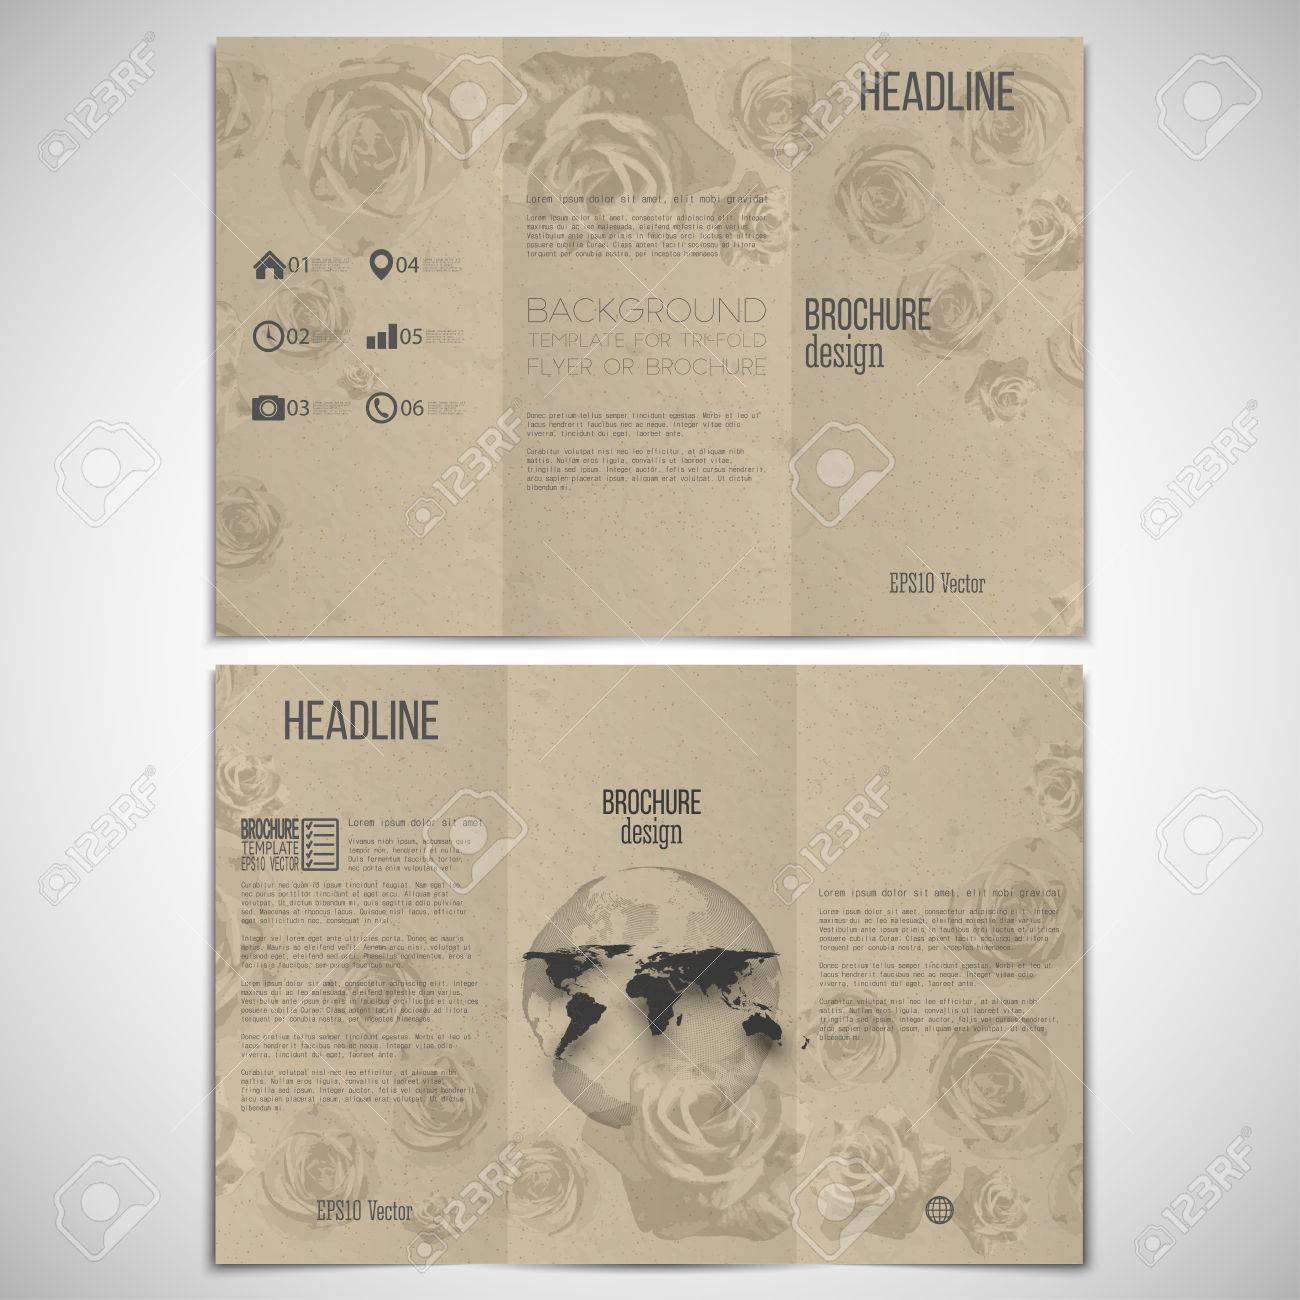 et of tri-fold brochure design template on both sides with world